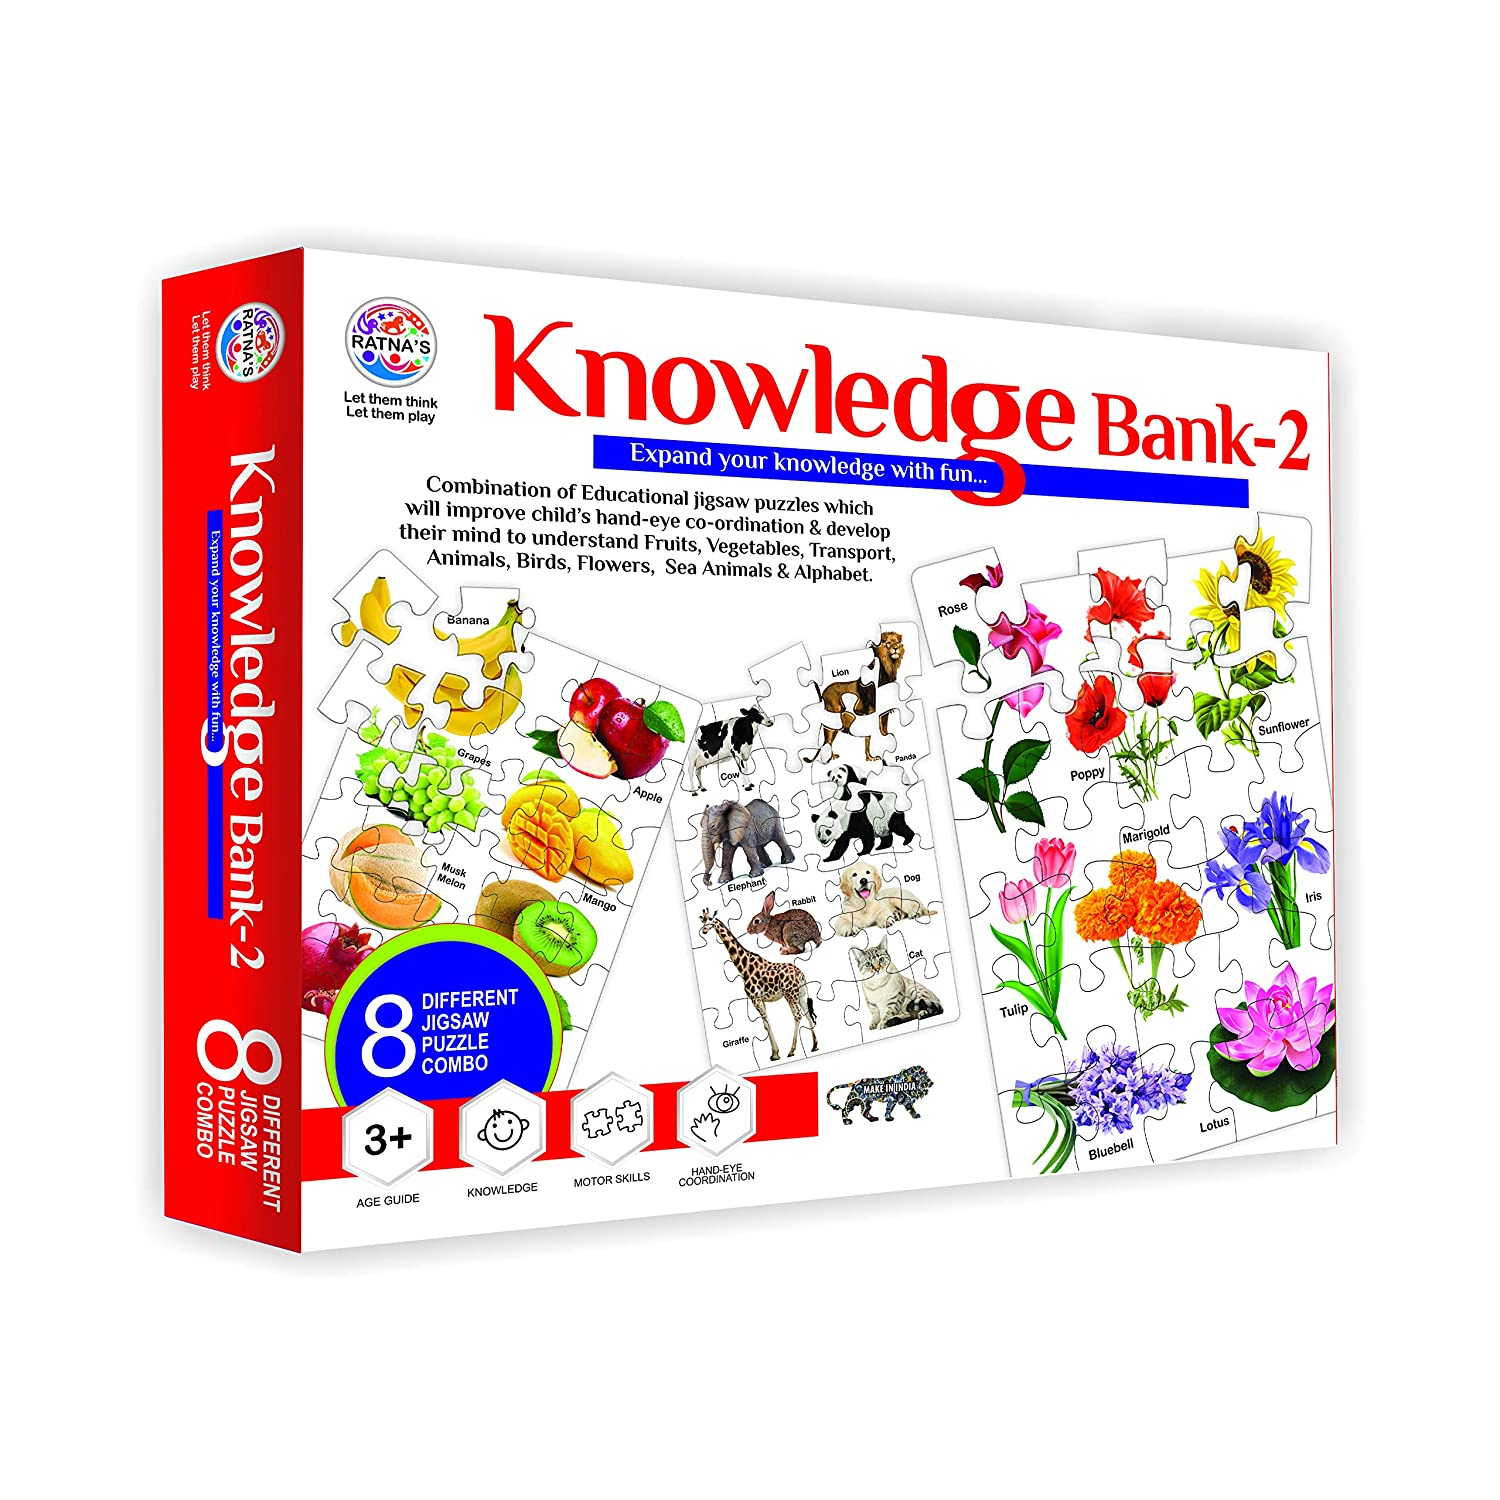 Knowledge Bank 2 Jigsaw Puzzle